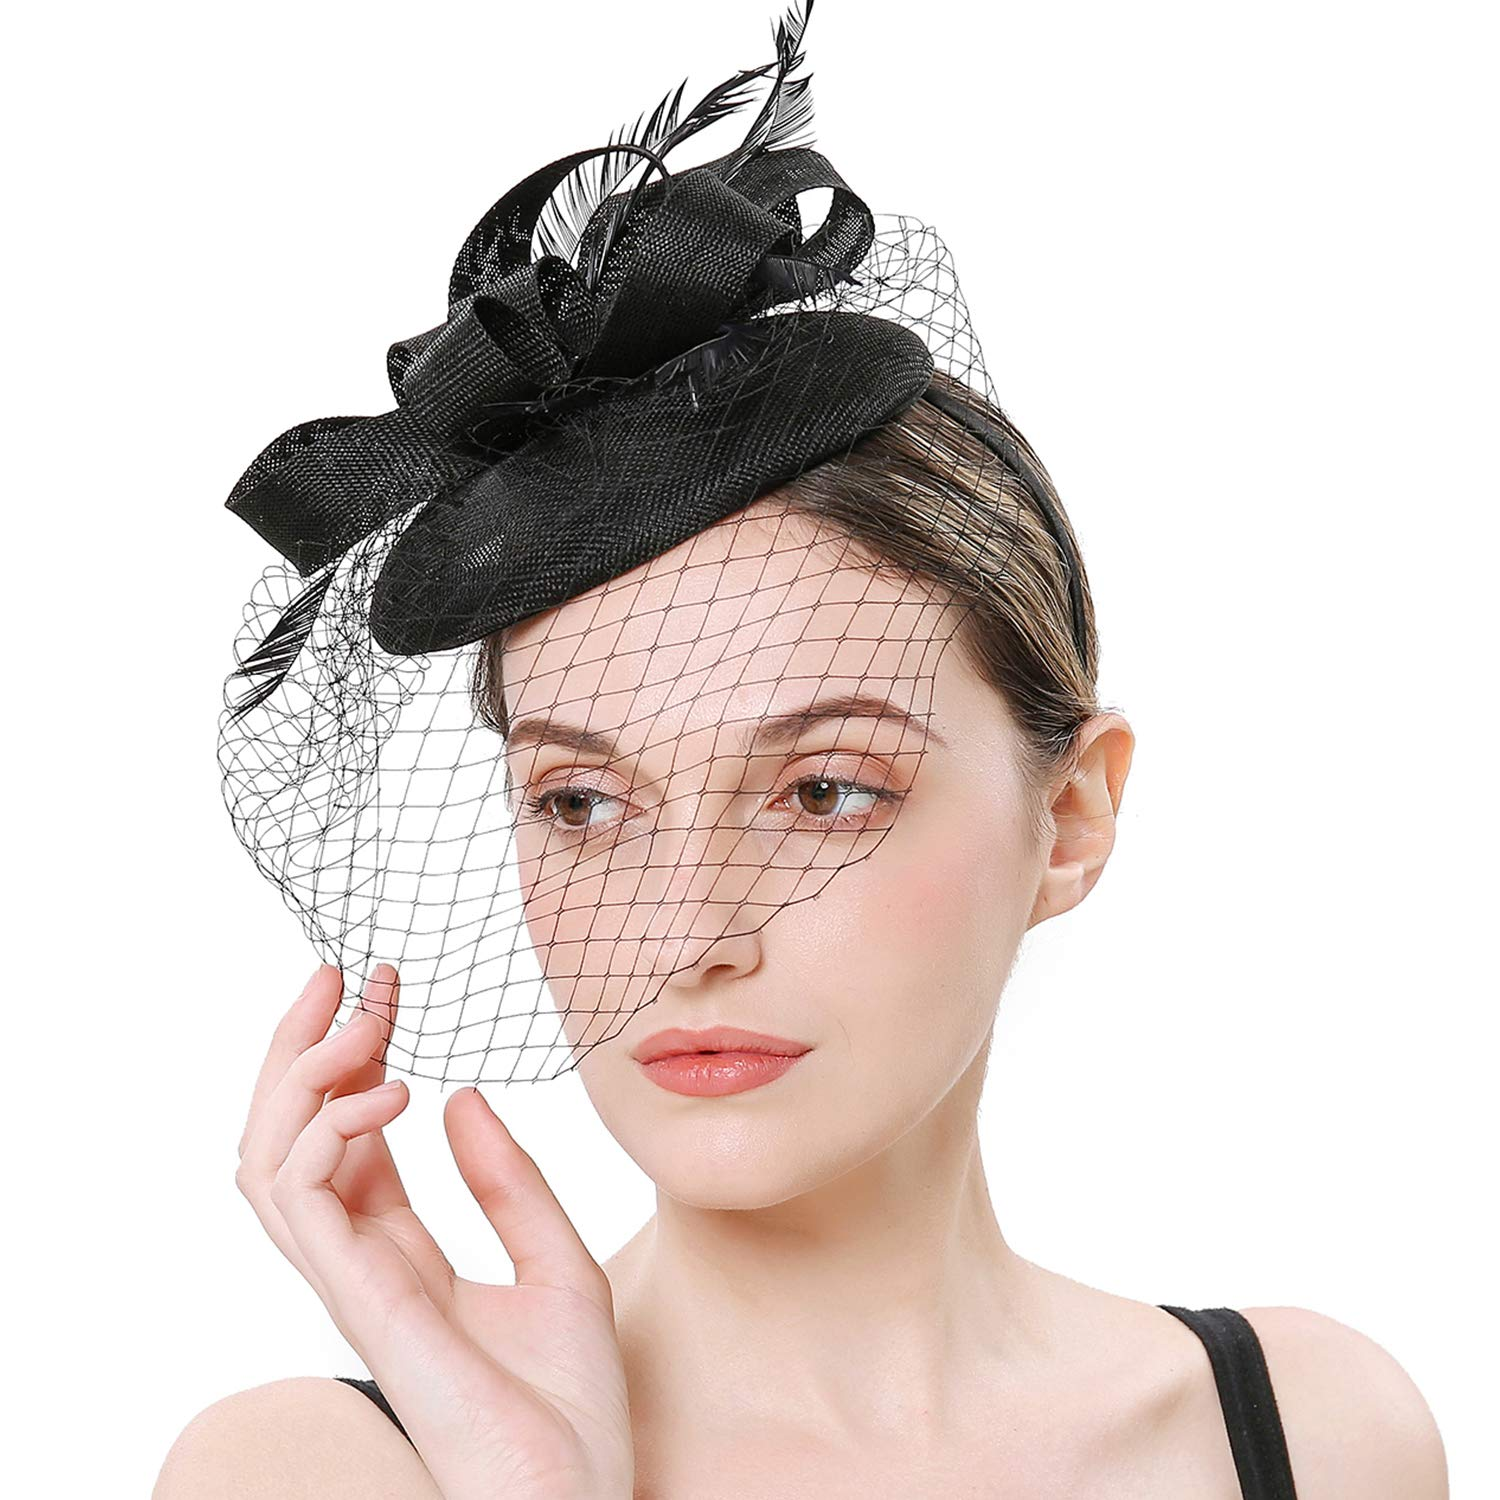 BABEYOND Women's Fascinators Hat Hair Clip Pillbox Hat Tea Party Fascinator Hat with Veil Headband for Cocktail Wedding Hair Accessories (Black4) by BABEYOND